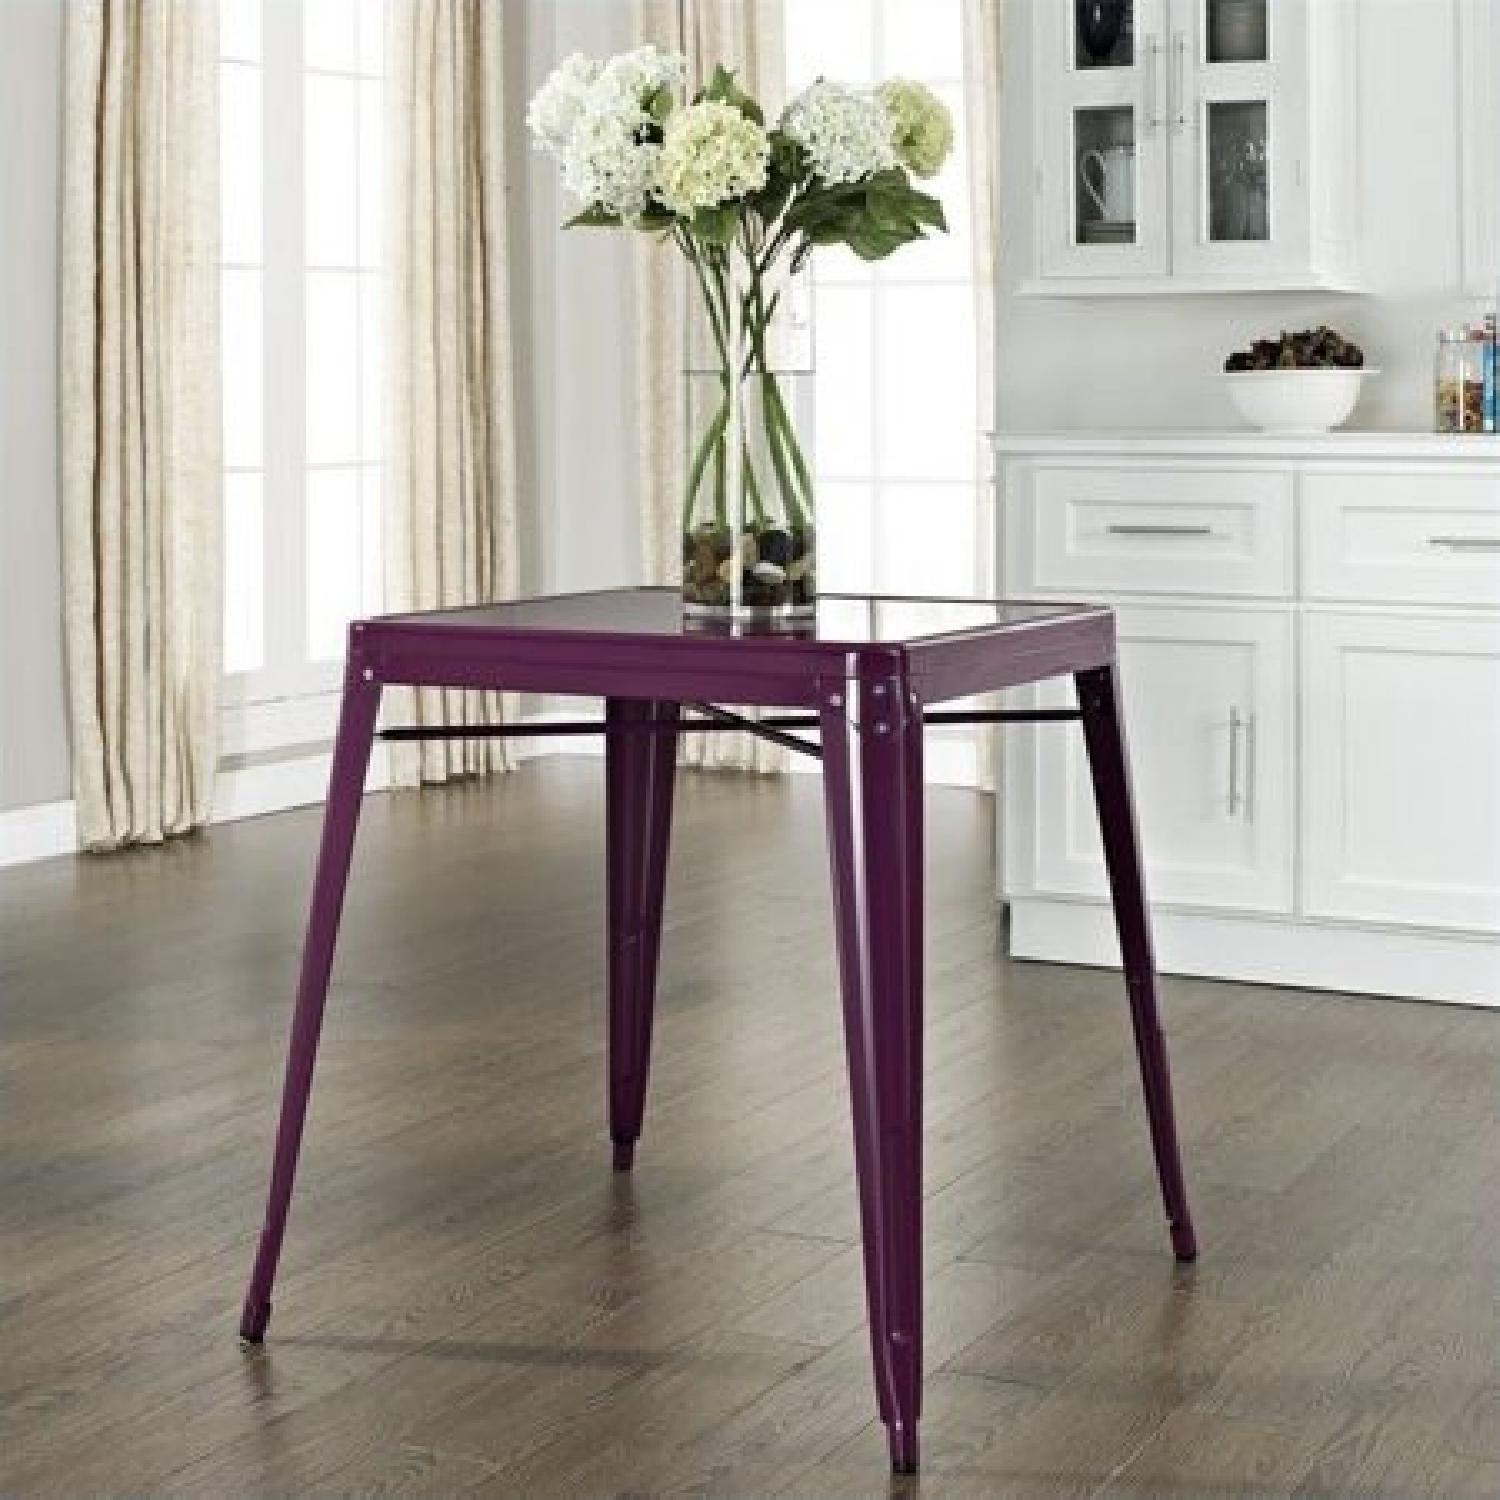 Crosley Metal Cafe Table in Purple - image-3